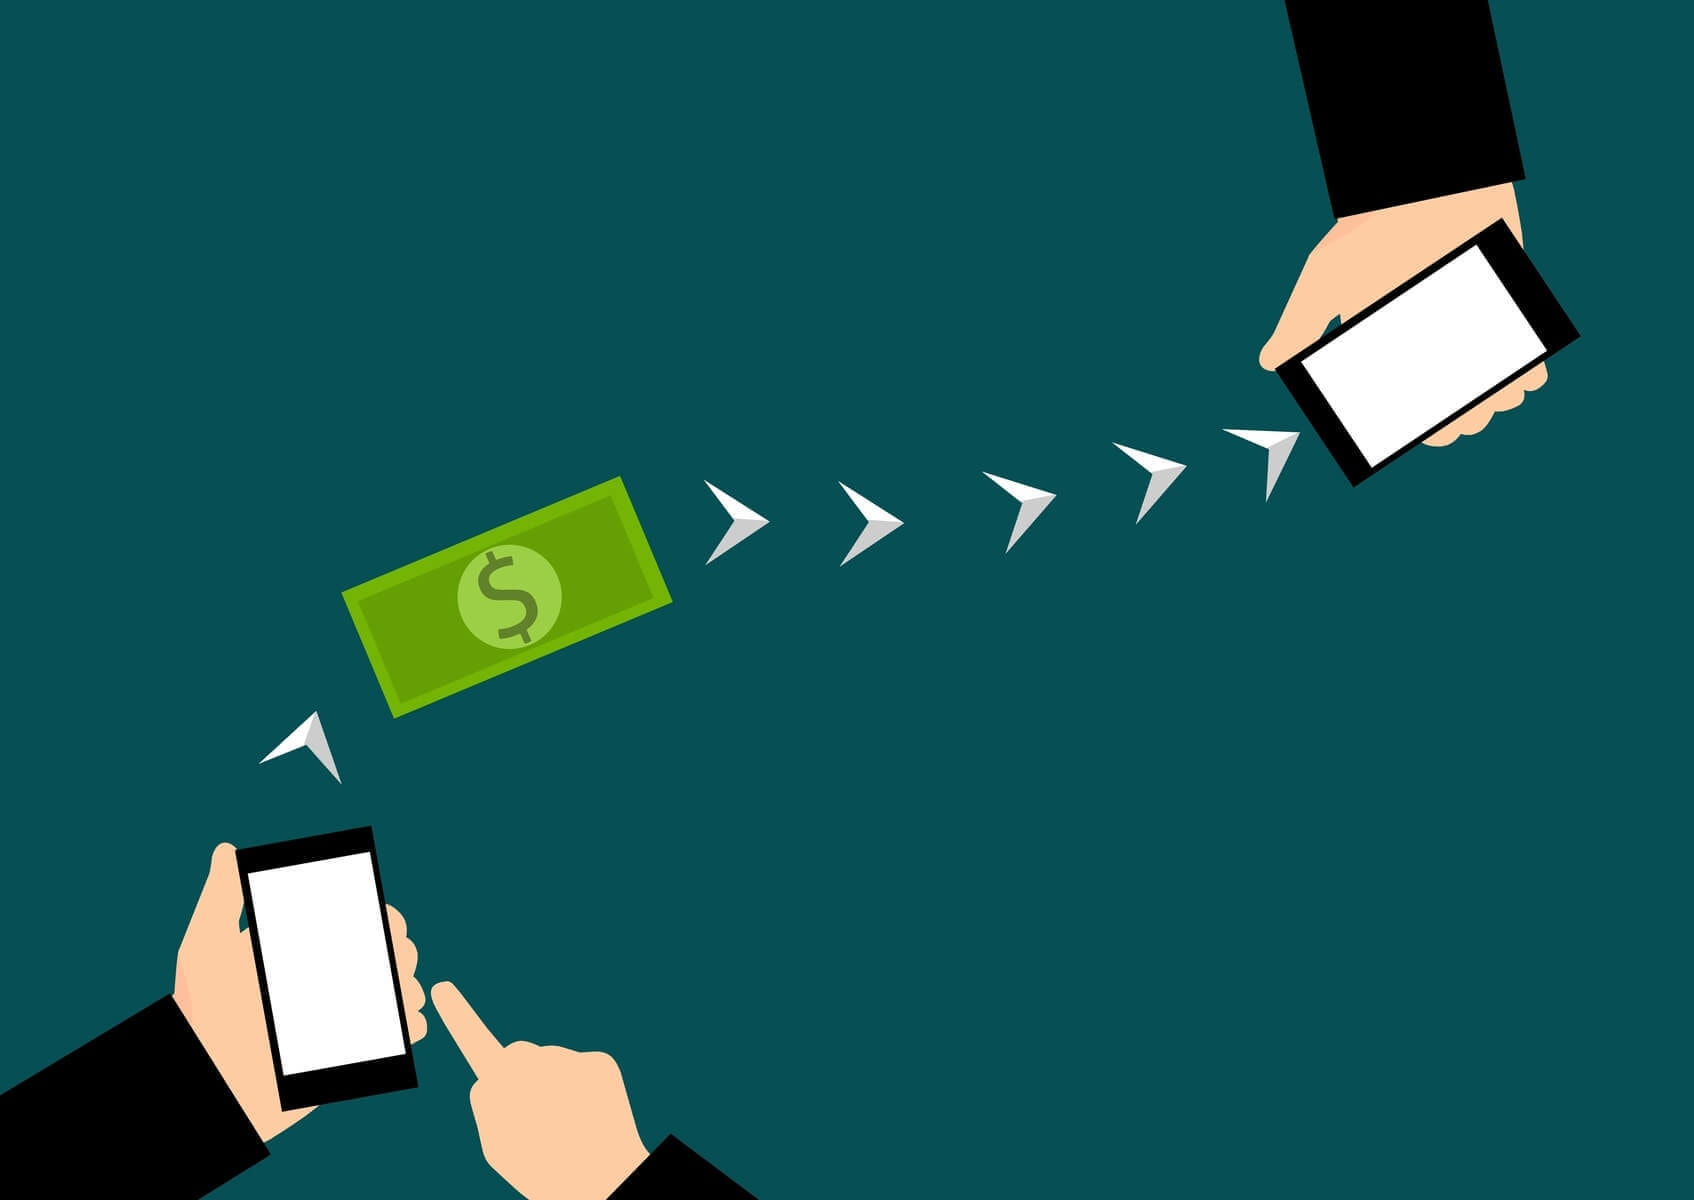 Convergence of Fintech and E-Commerce Startups